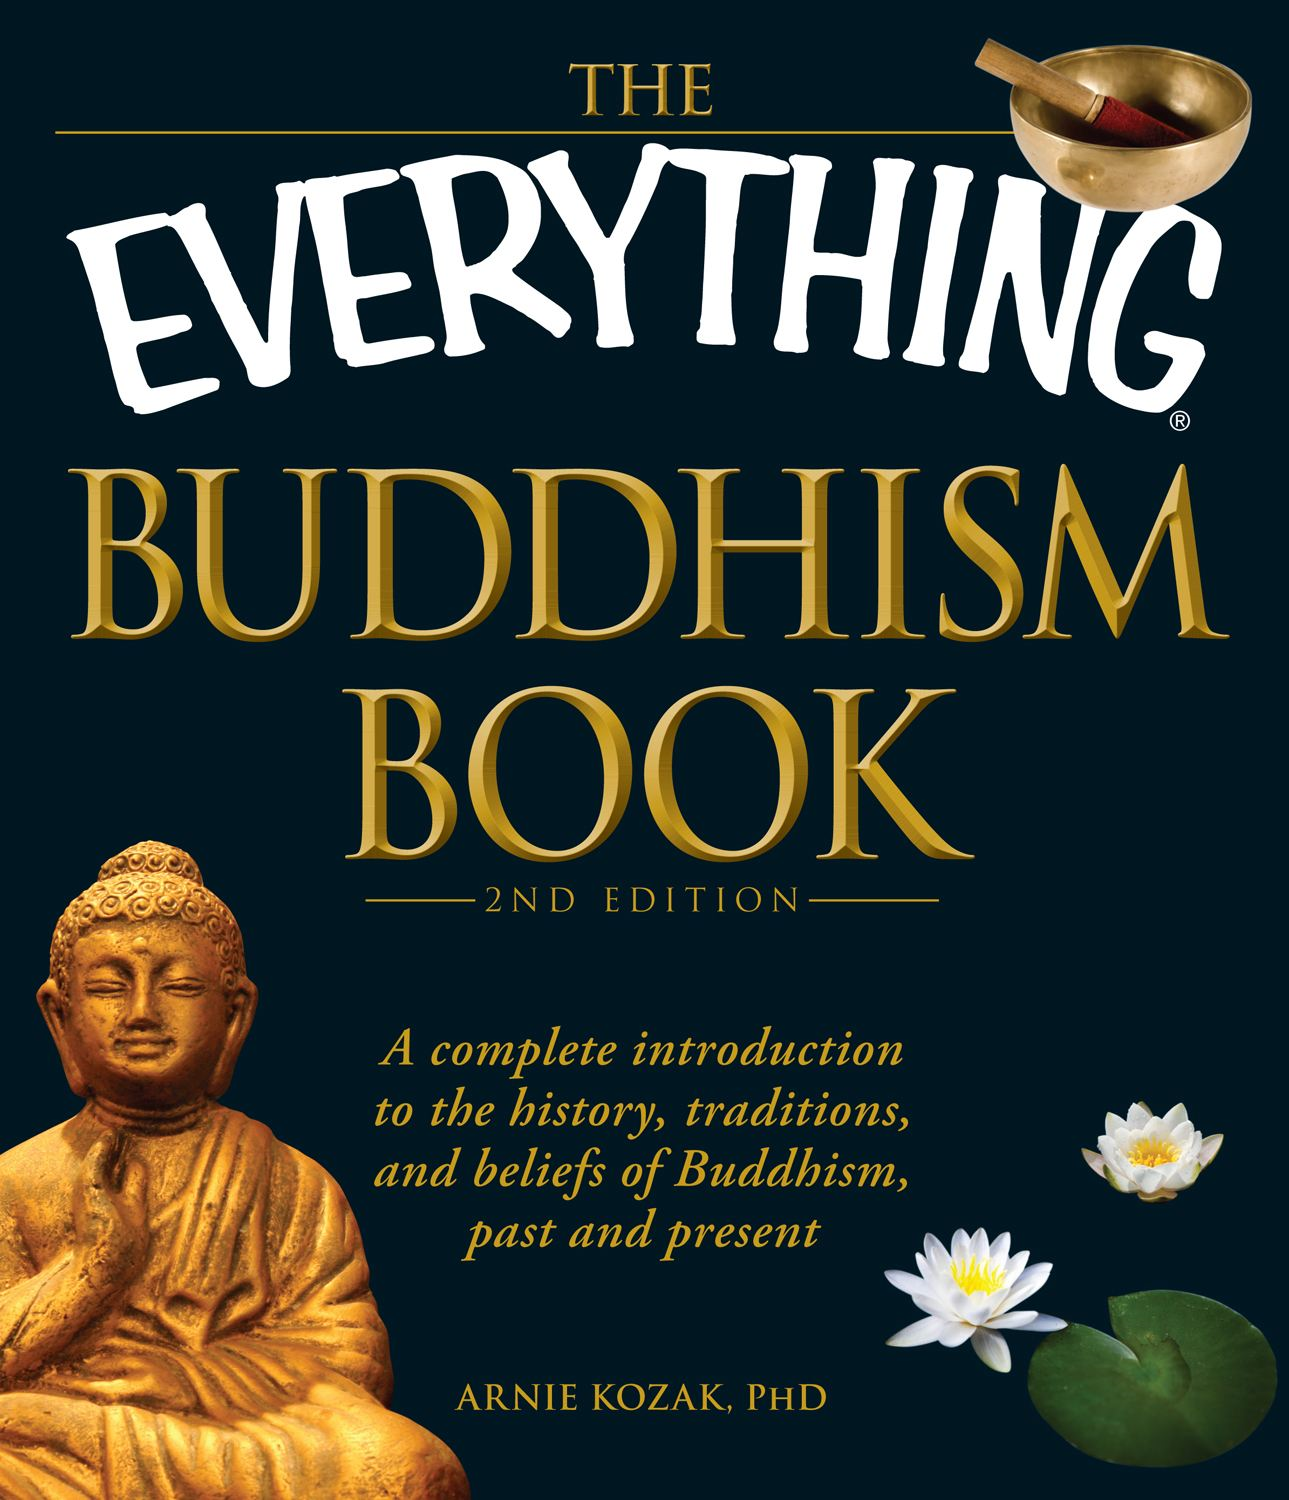 The Everything Buddhism Book, 2nd Edition: A complete introduction to the history, traditions, and beliefs of Buddhism, past and present By: Arnie Kozak